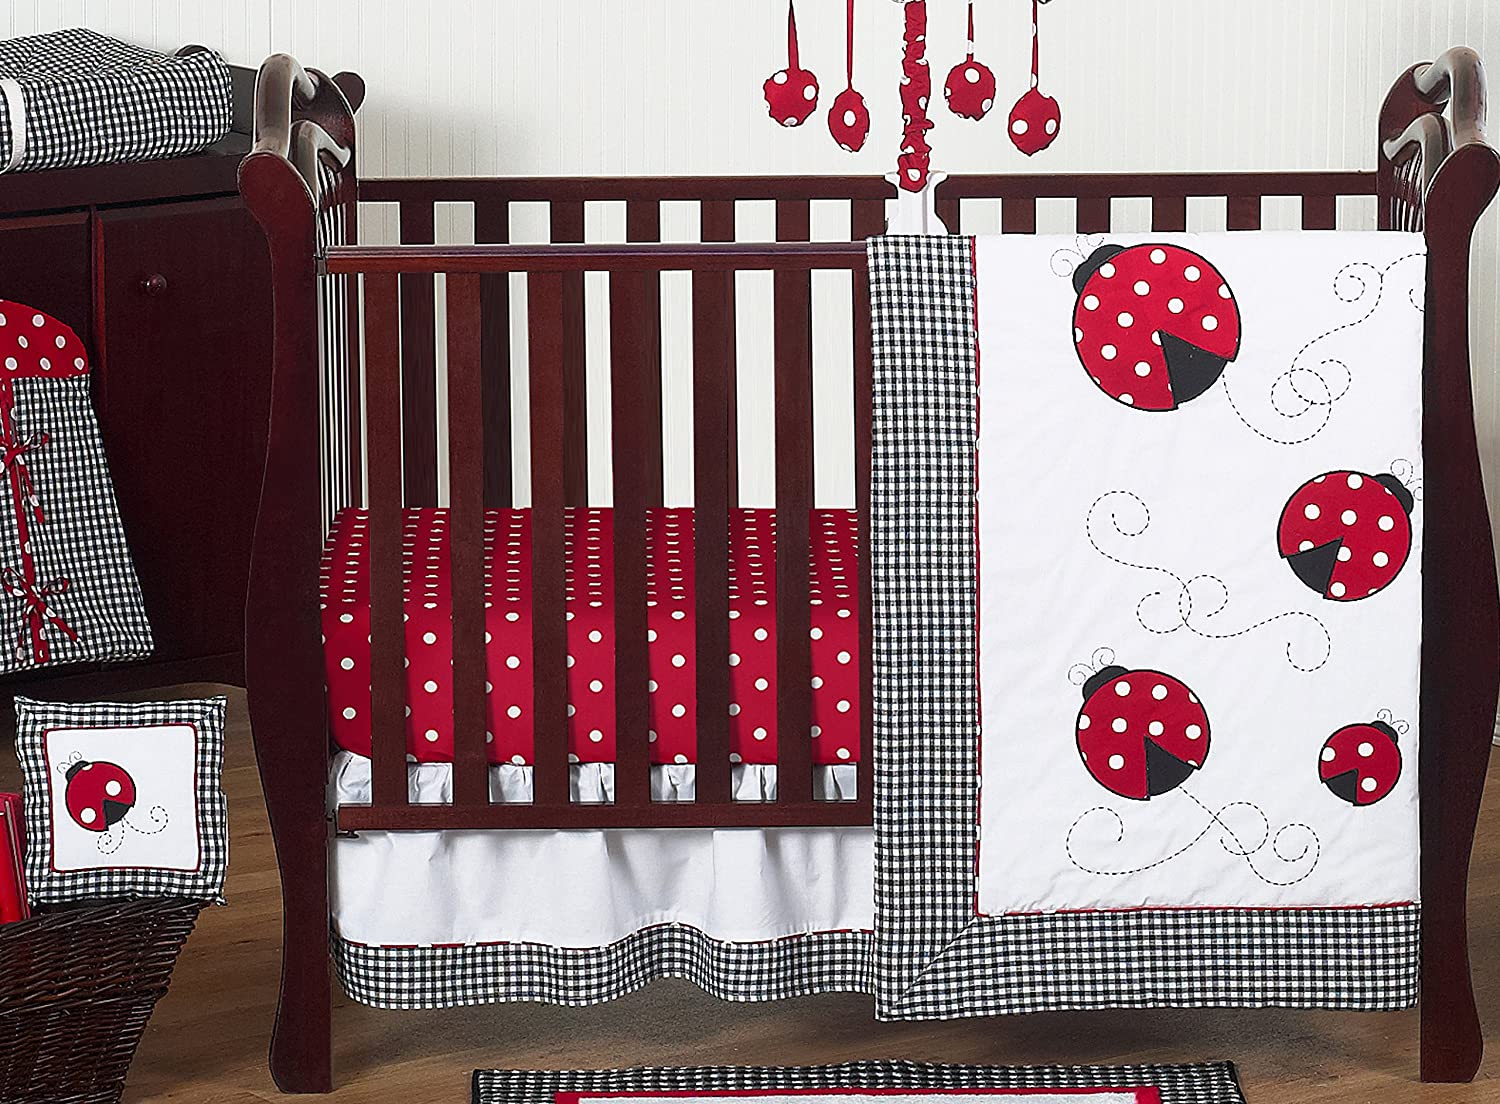 Sweet Jojo Designs 11-Pc Red/White Polka Dot Ladybug Bedding Crib Set W/O Bumper